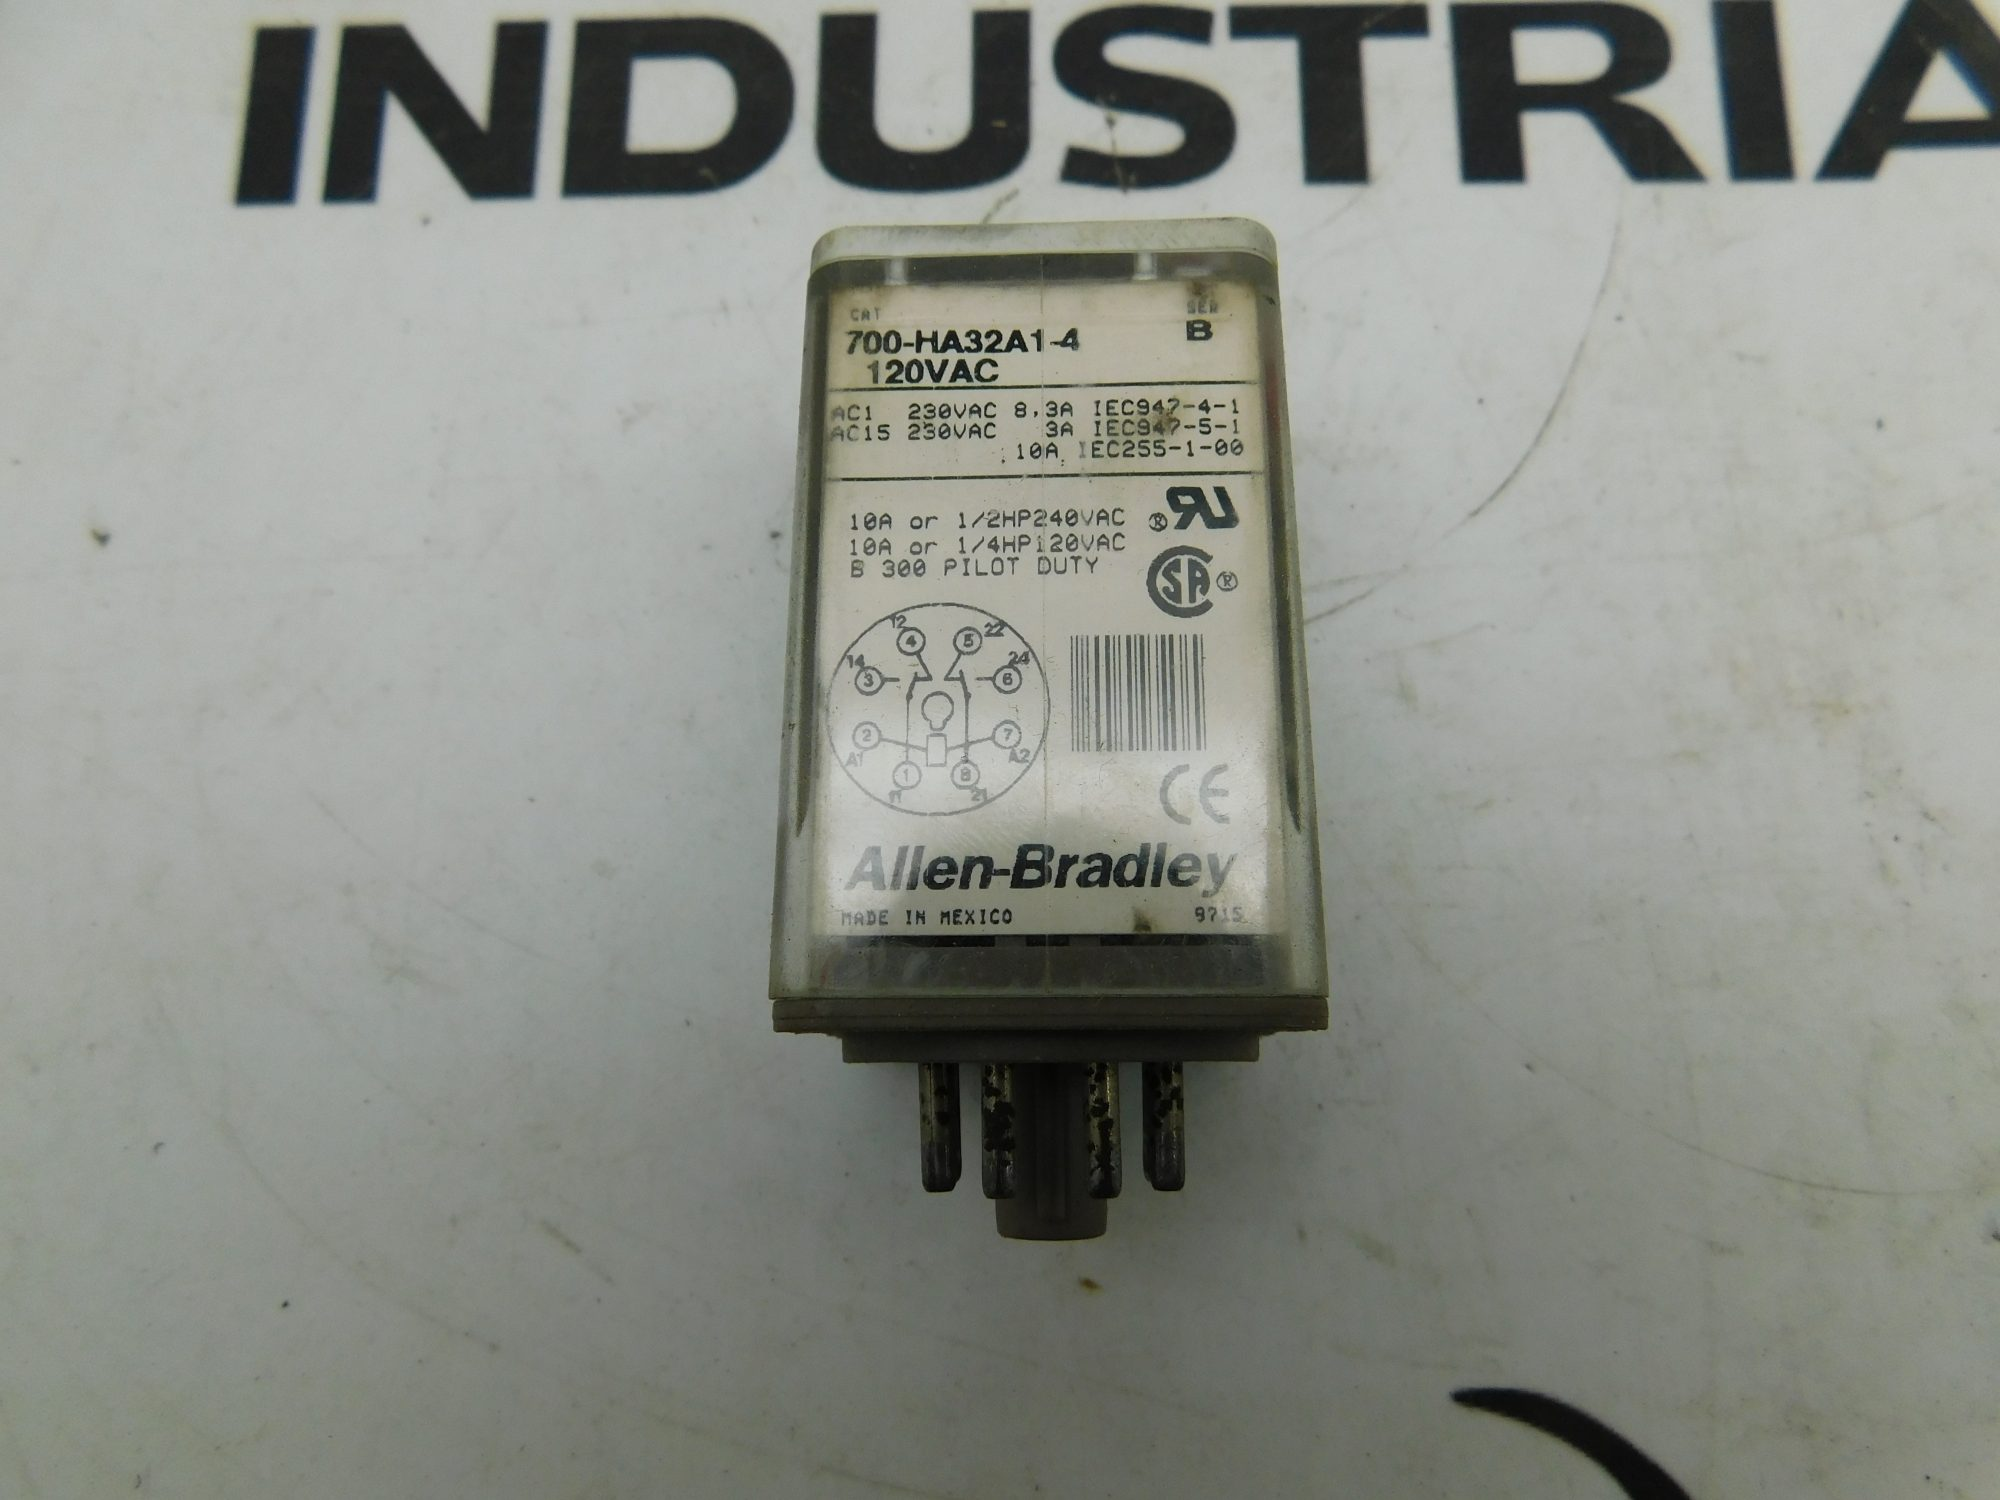 Allen-Bradley CAT No. 700-HA32A1-4 Series B 120VAC Relay